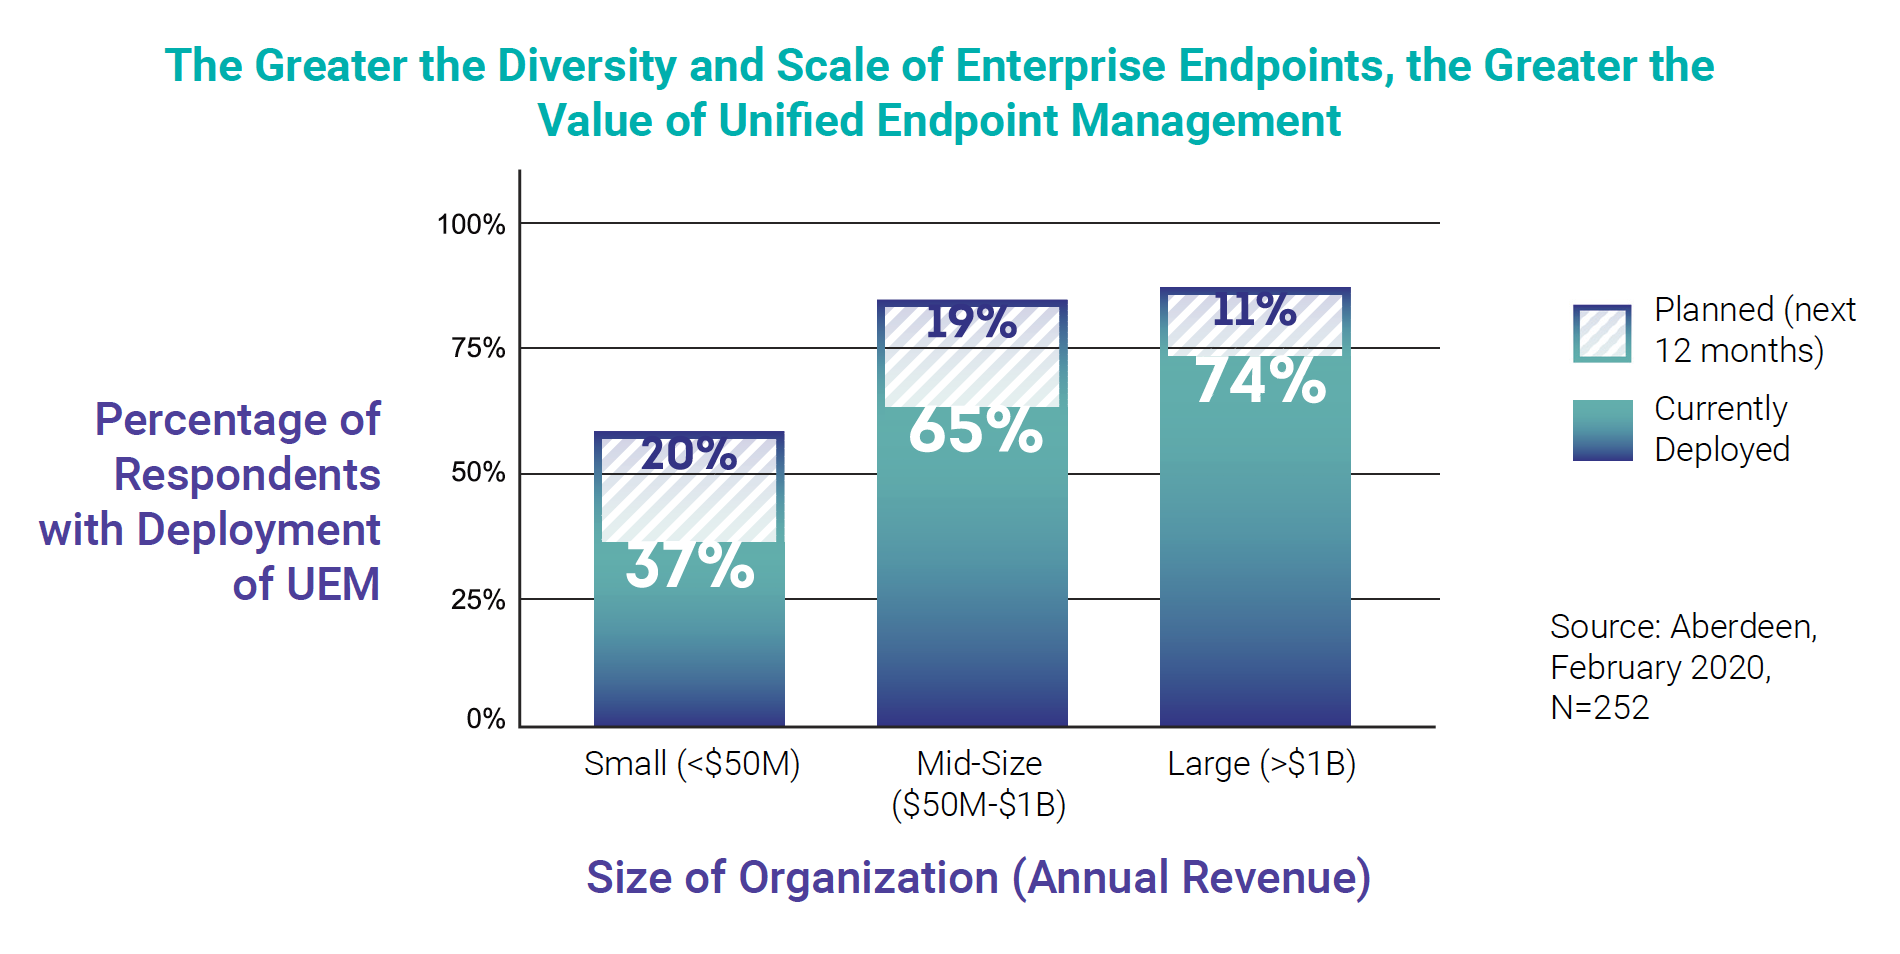 The Greater the Diversity and Scale of Enterprise Endpoints, the Greater the Value of Unified Endpoint Management